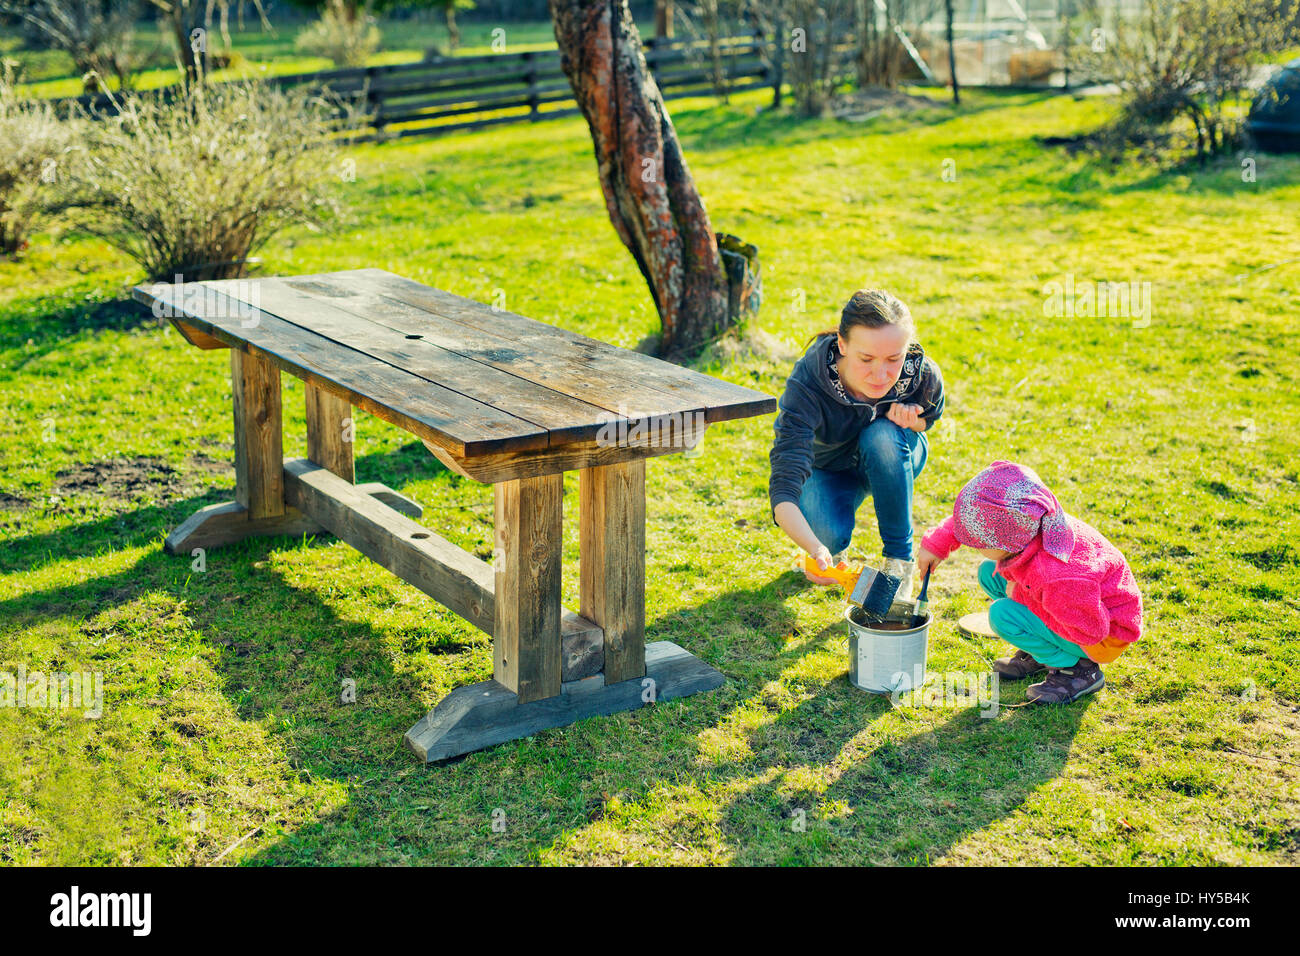 Finland, Paijat-Hame, Heinola, Mother with daughter (4-5) oiling wooden table in garden - Stock Image